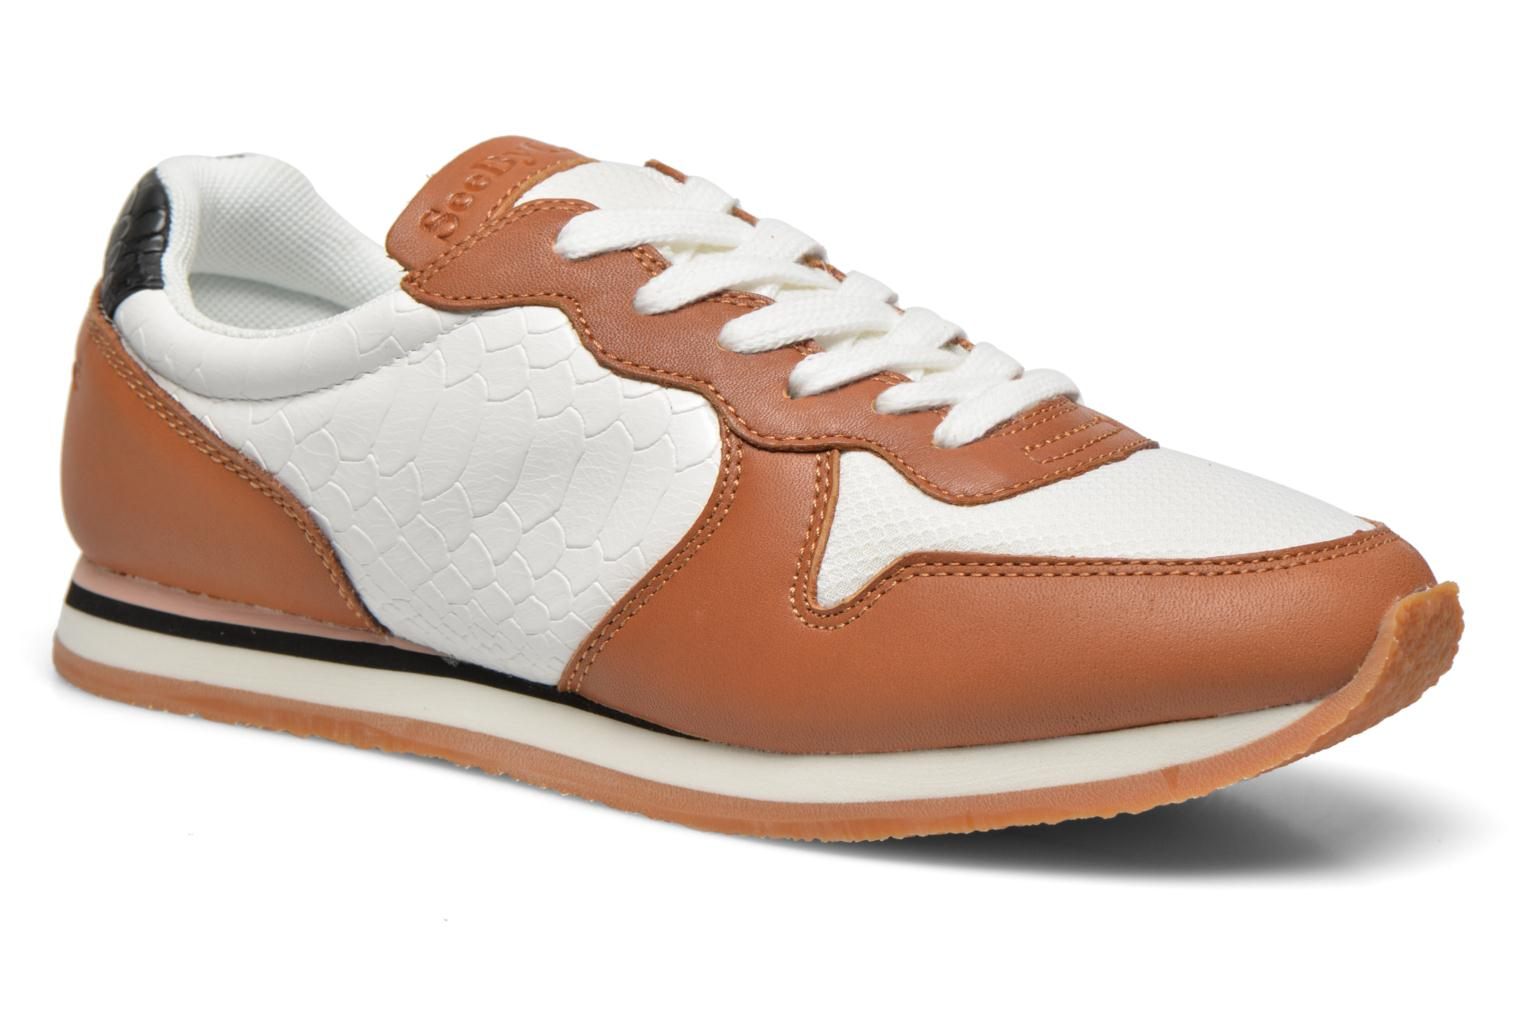 Sneakers Katie by See by Chloé